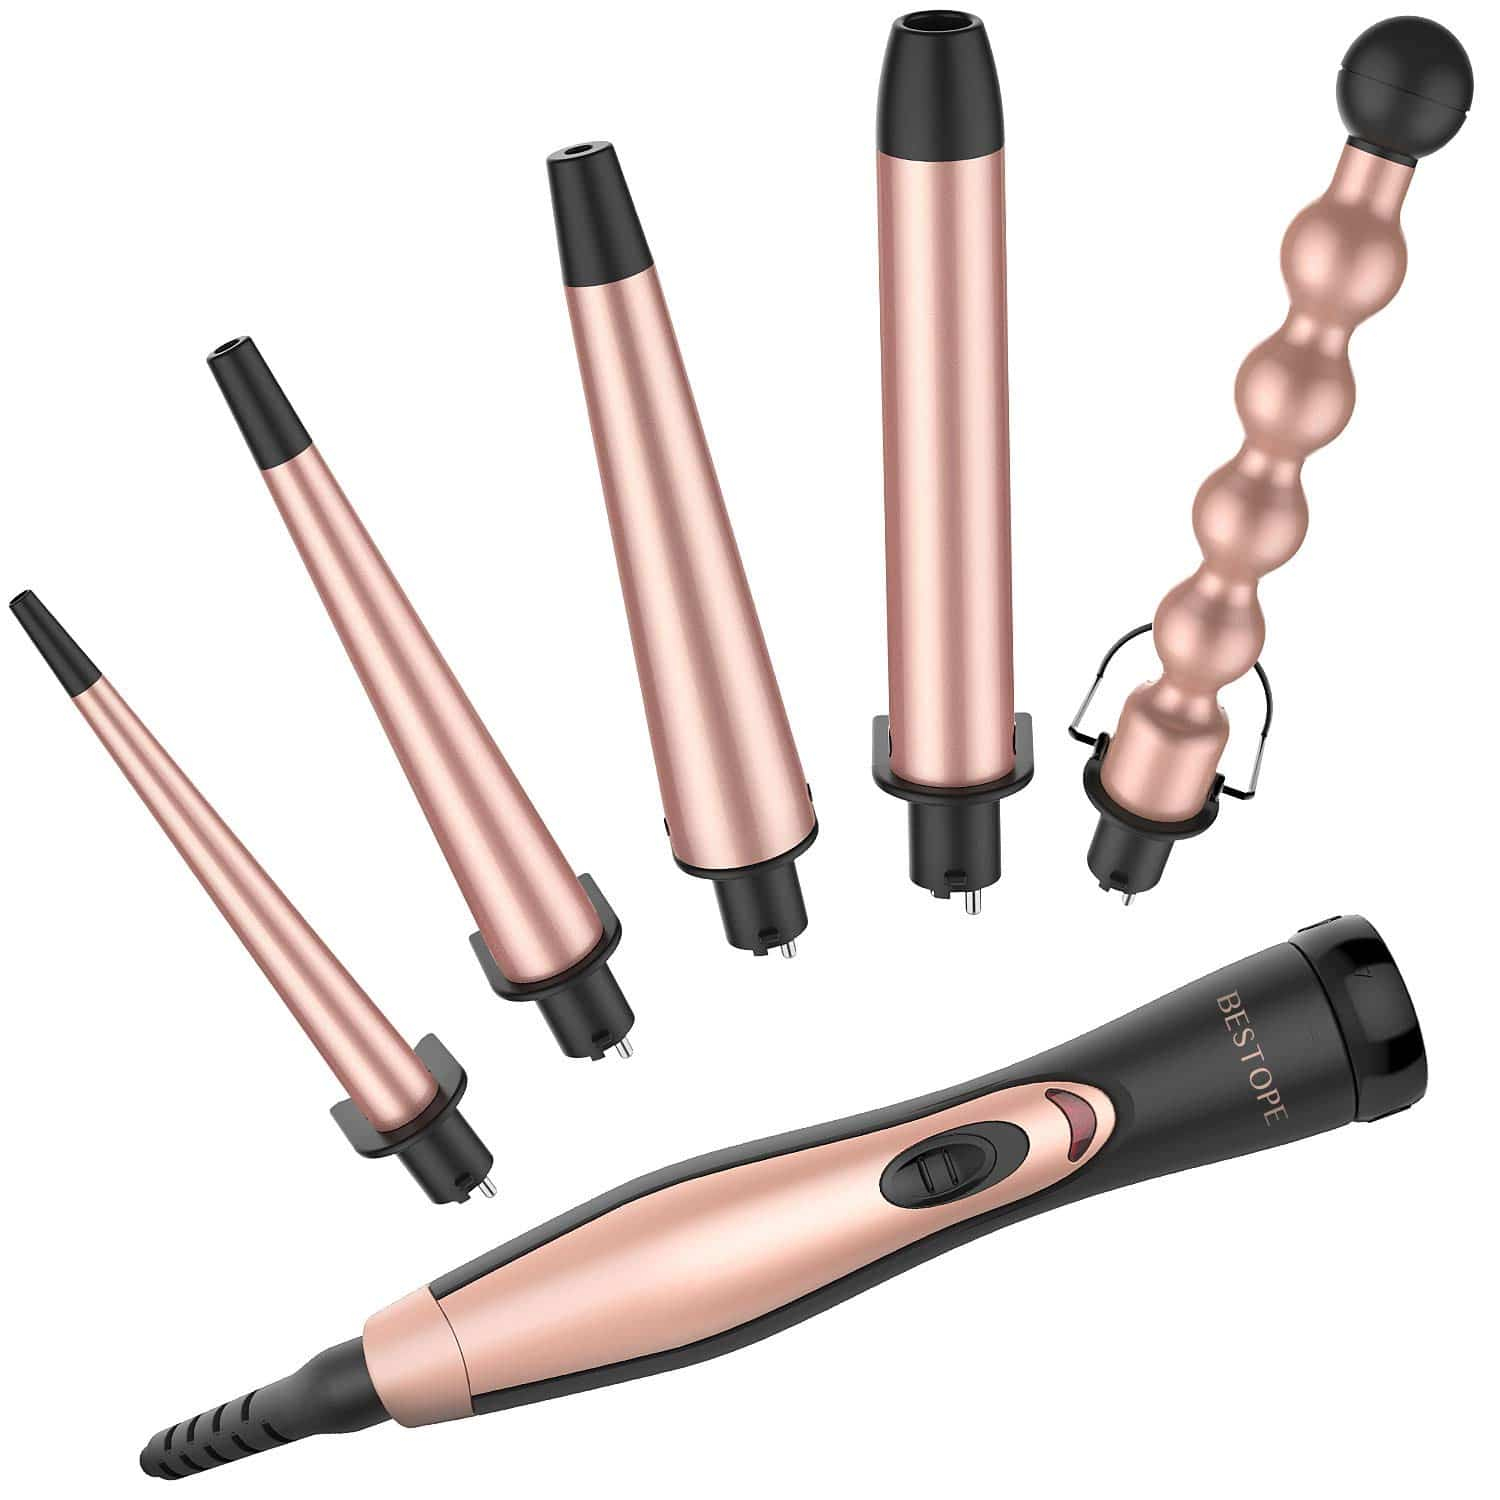 Bestope 5in1 curling wand